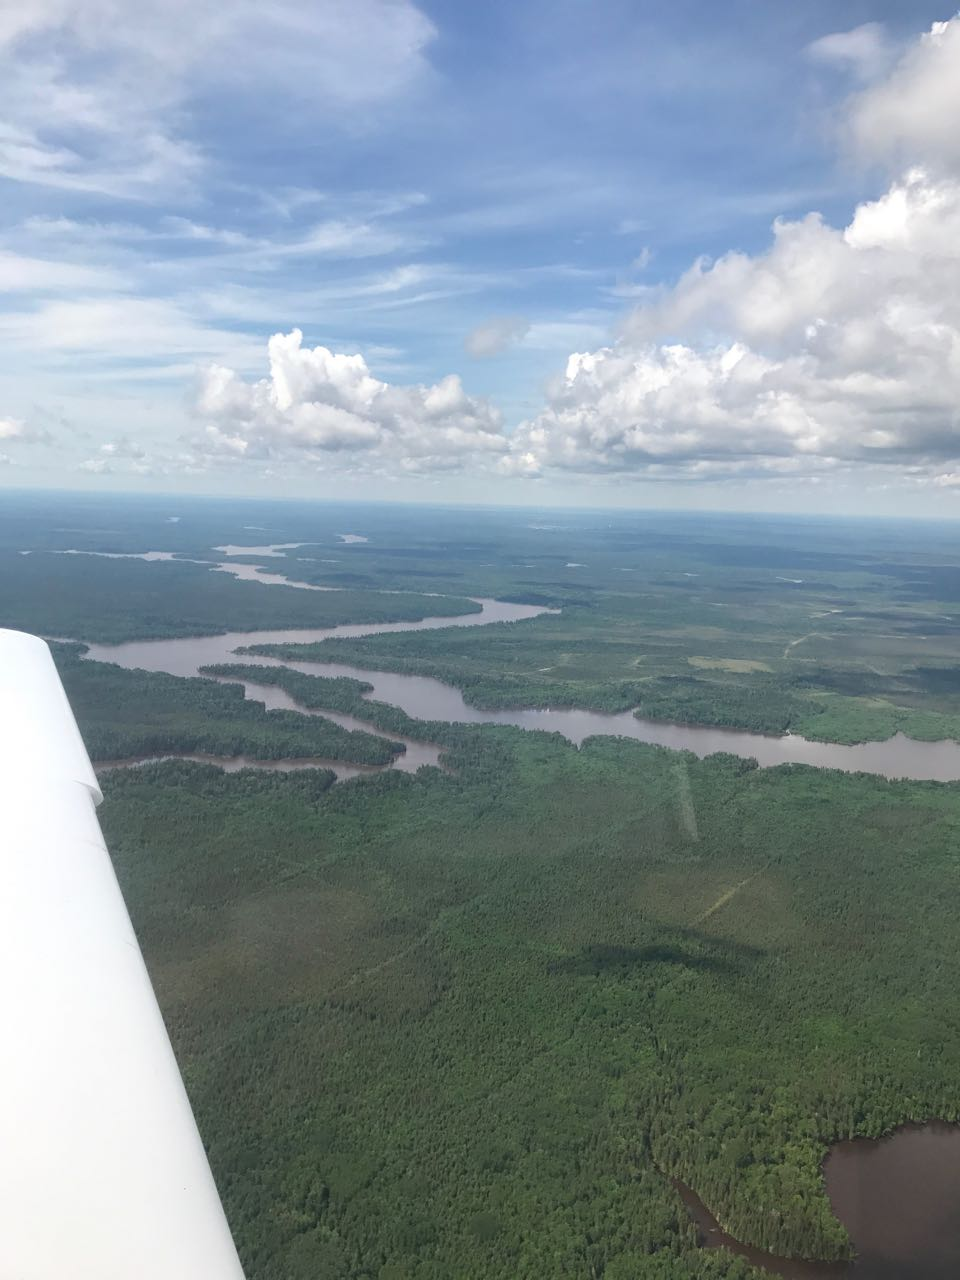 rivers-joining-after-lake-abitibi_35600135065_o.jpg